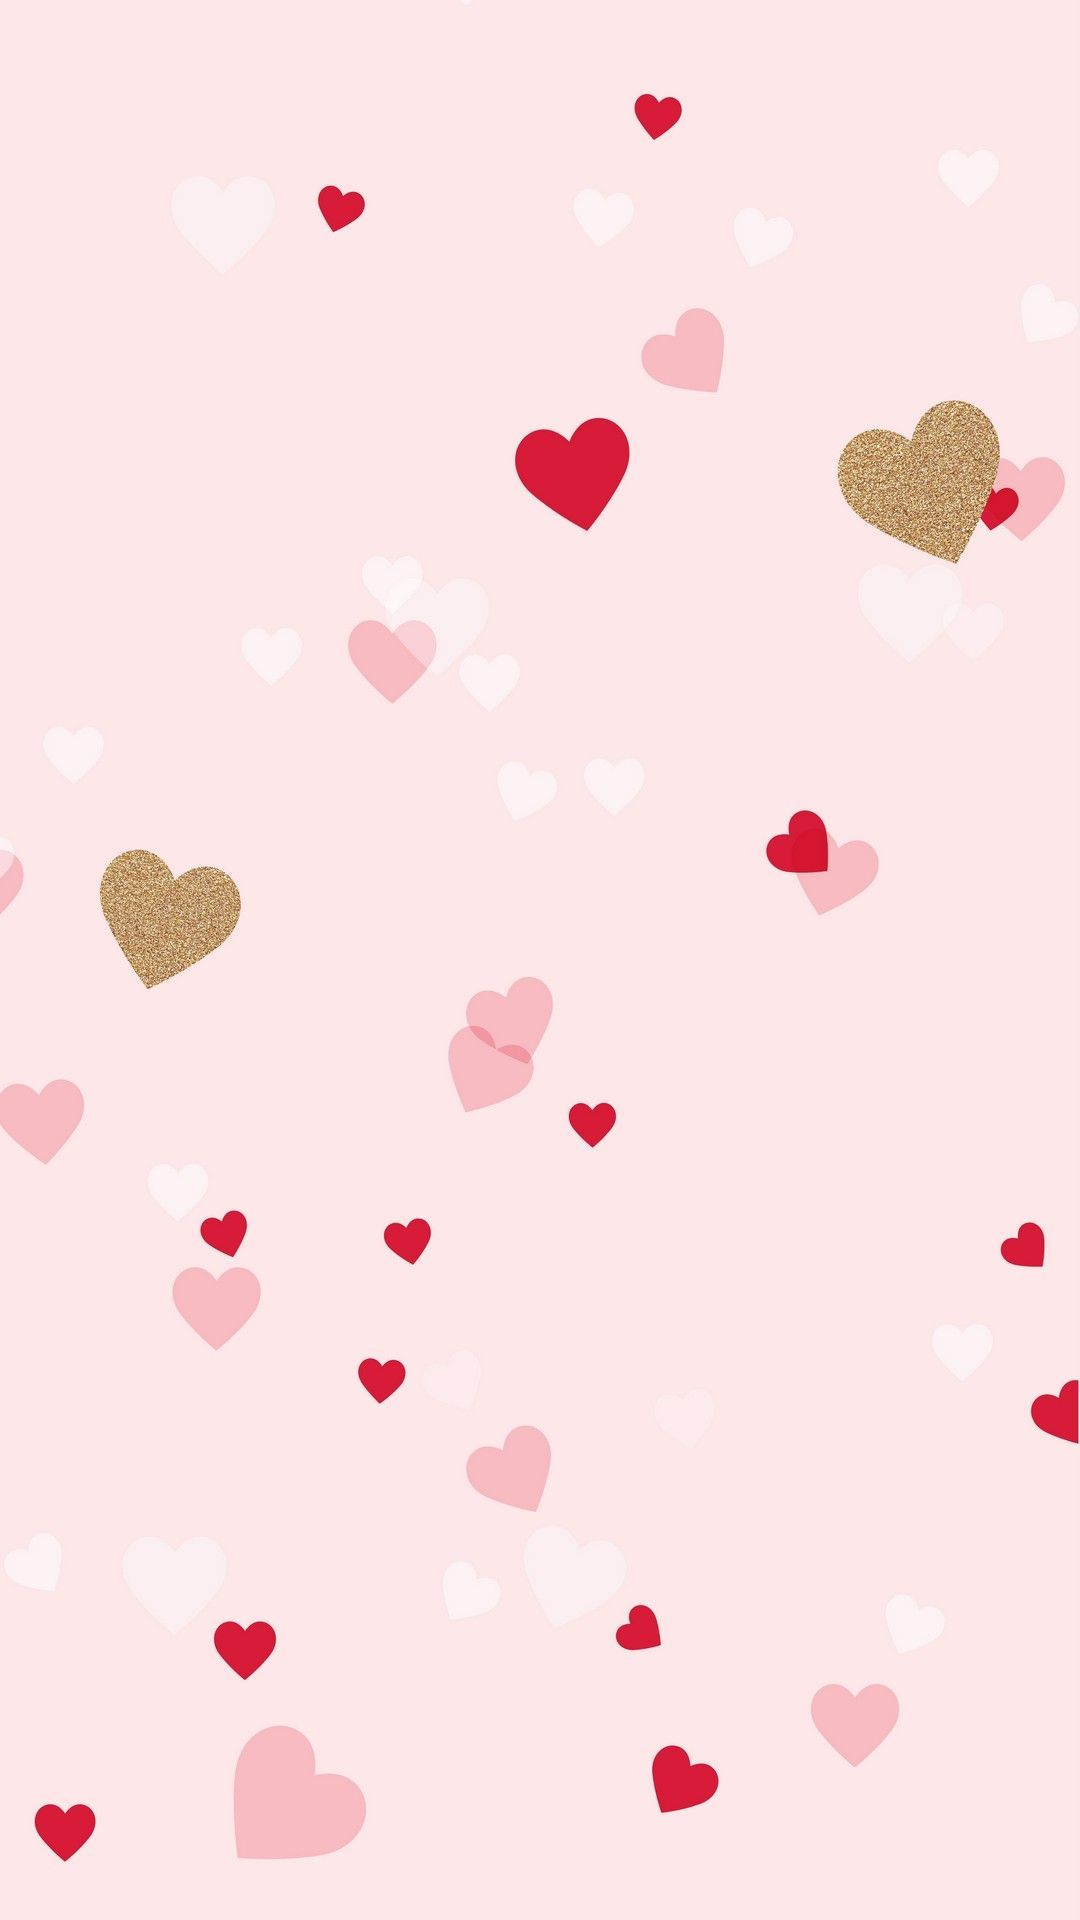 Awesome Cute Girly Love Wallpapers - WallpaperAccess